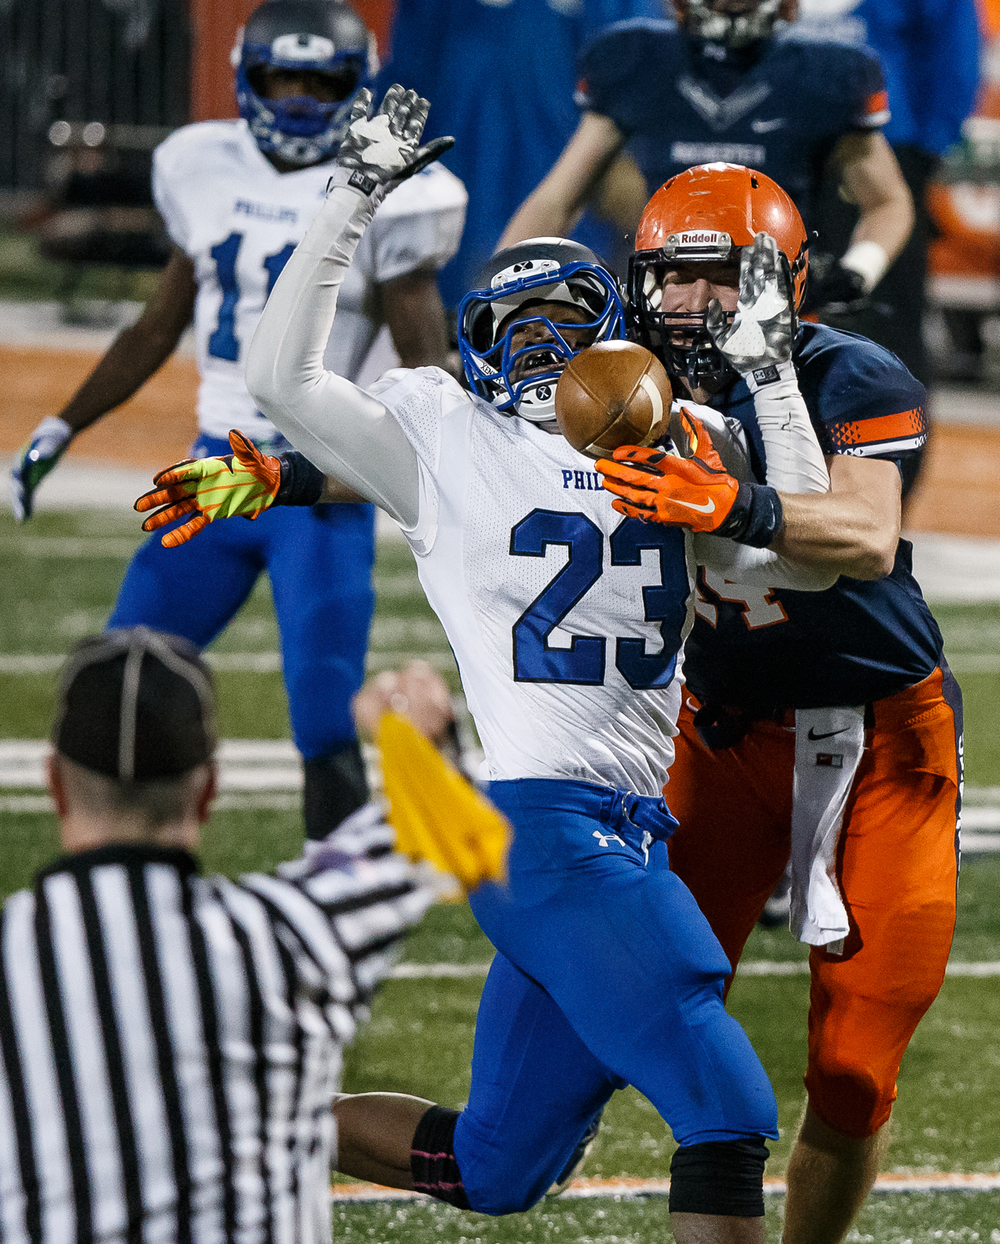 Rochester's Adam Conrady (44) gets called for offensive pass interference going for a catch against Chicago Phillips' Jamal Brown (23) in the first half during the IHSA Class 4A state championship game at Memorial Stadium, Friday, Nov. 28, 2014, in Champaign, Ill. Justin L. Fowler/The State Journal-Register